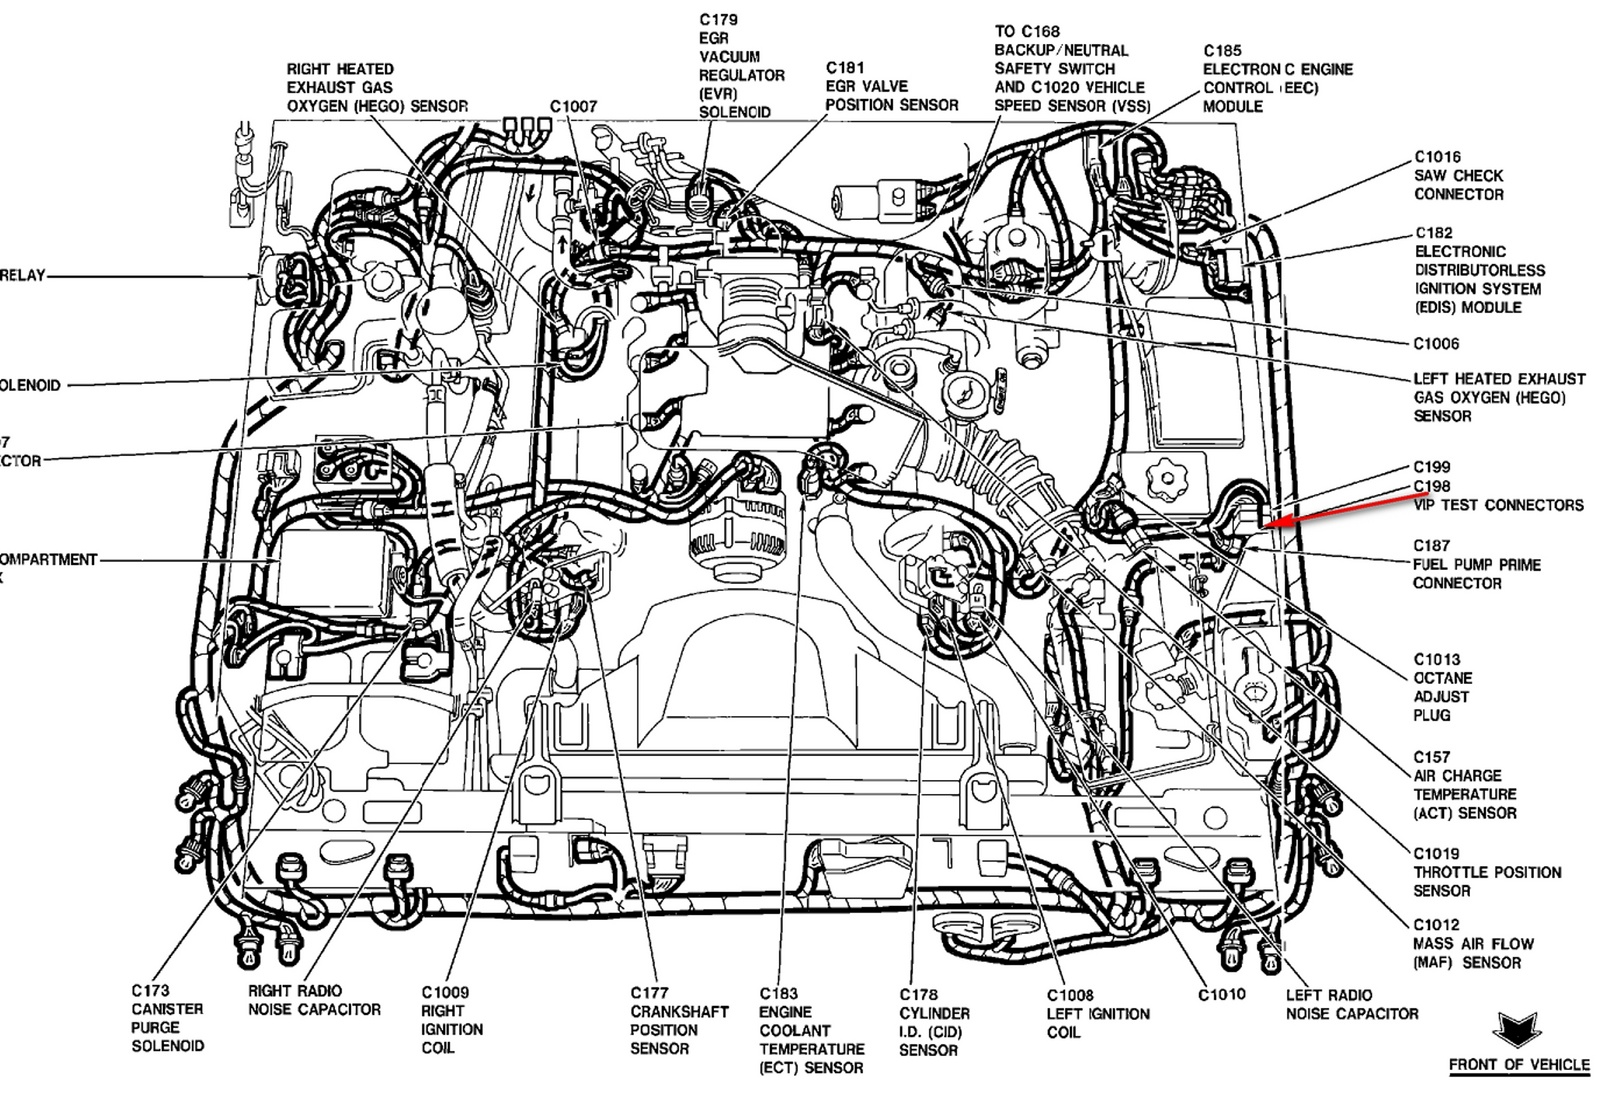 1972 mustang engine diagram 2013 mustang fuse box cover 2013 wiring diagrams